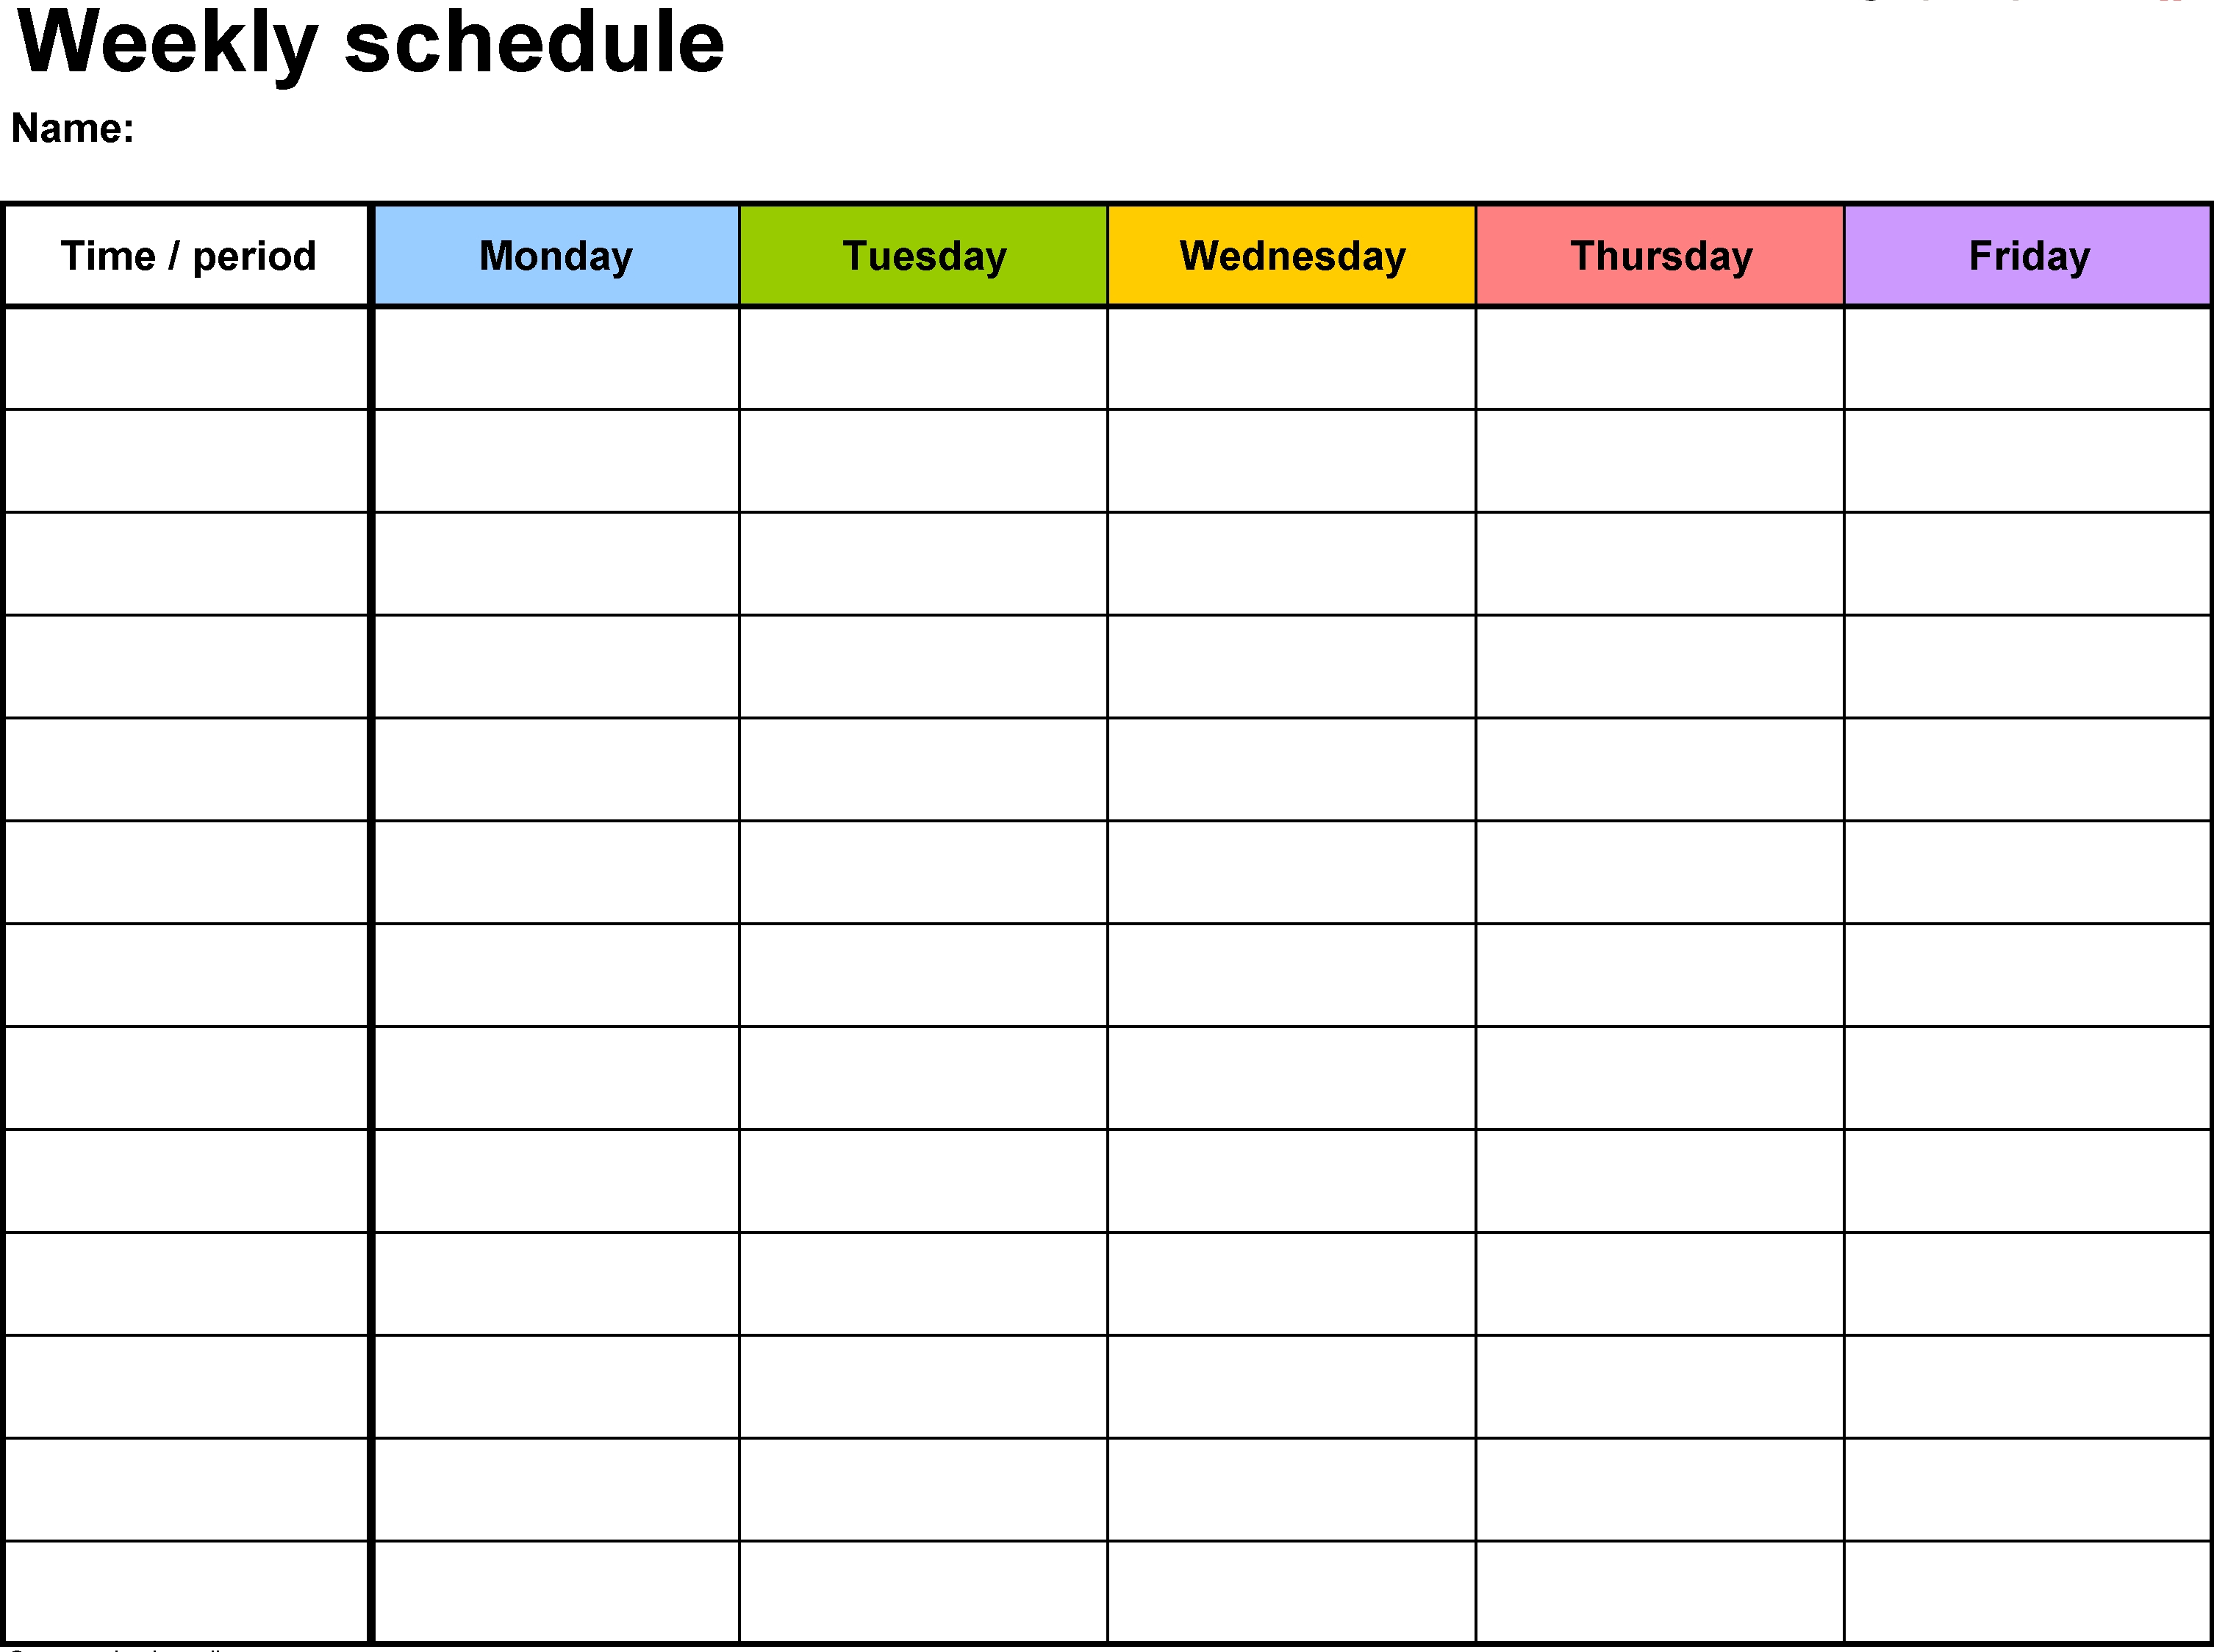 Weekly Hourly Calendar Template | Monthly Calendar Template intended for Hourly Weekly Calendar